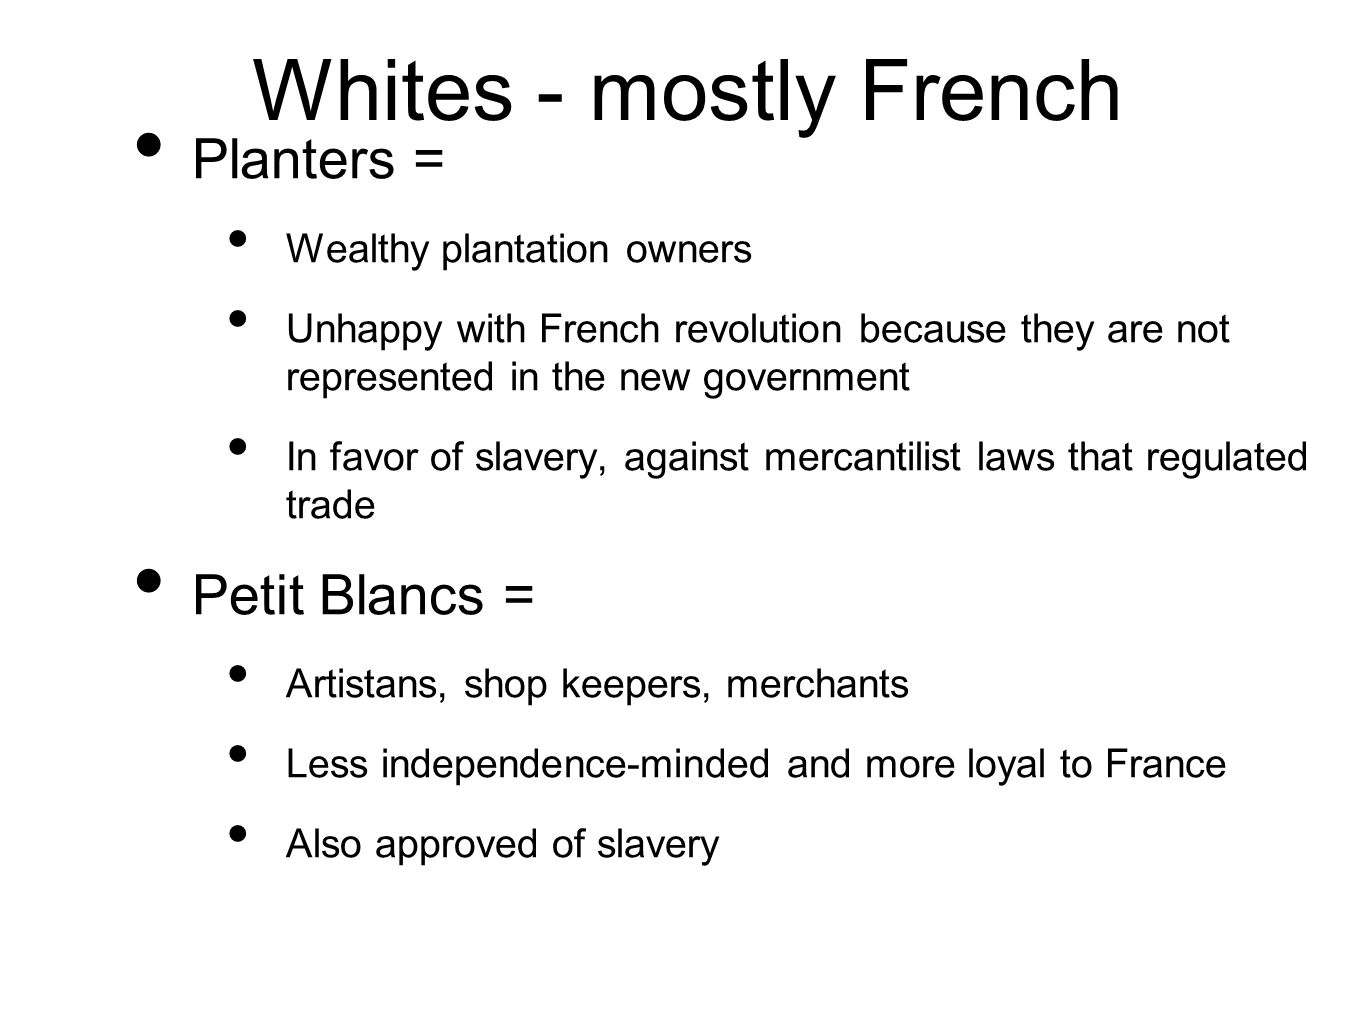 Whites - mostly French Planters = Wealthy plantation owners Unhappy with French revolution because they are not represented in the new government In favor of slavery, against mercantilist laws that regulated trade Petit Blancs = Artistans, shop keepers, merchants Less independence-minded and more loyal to France Also approved of slavery